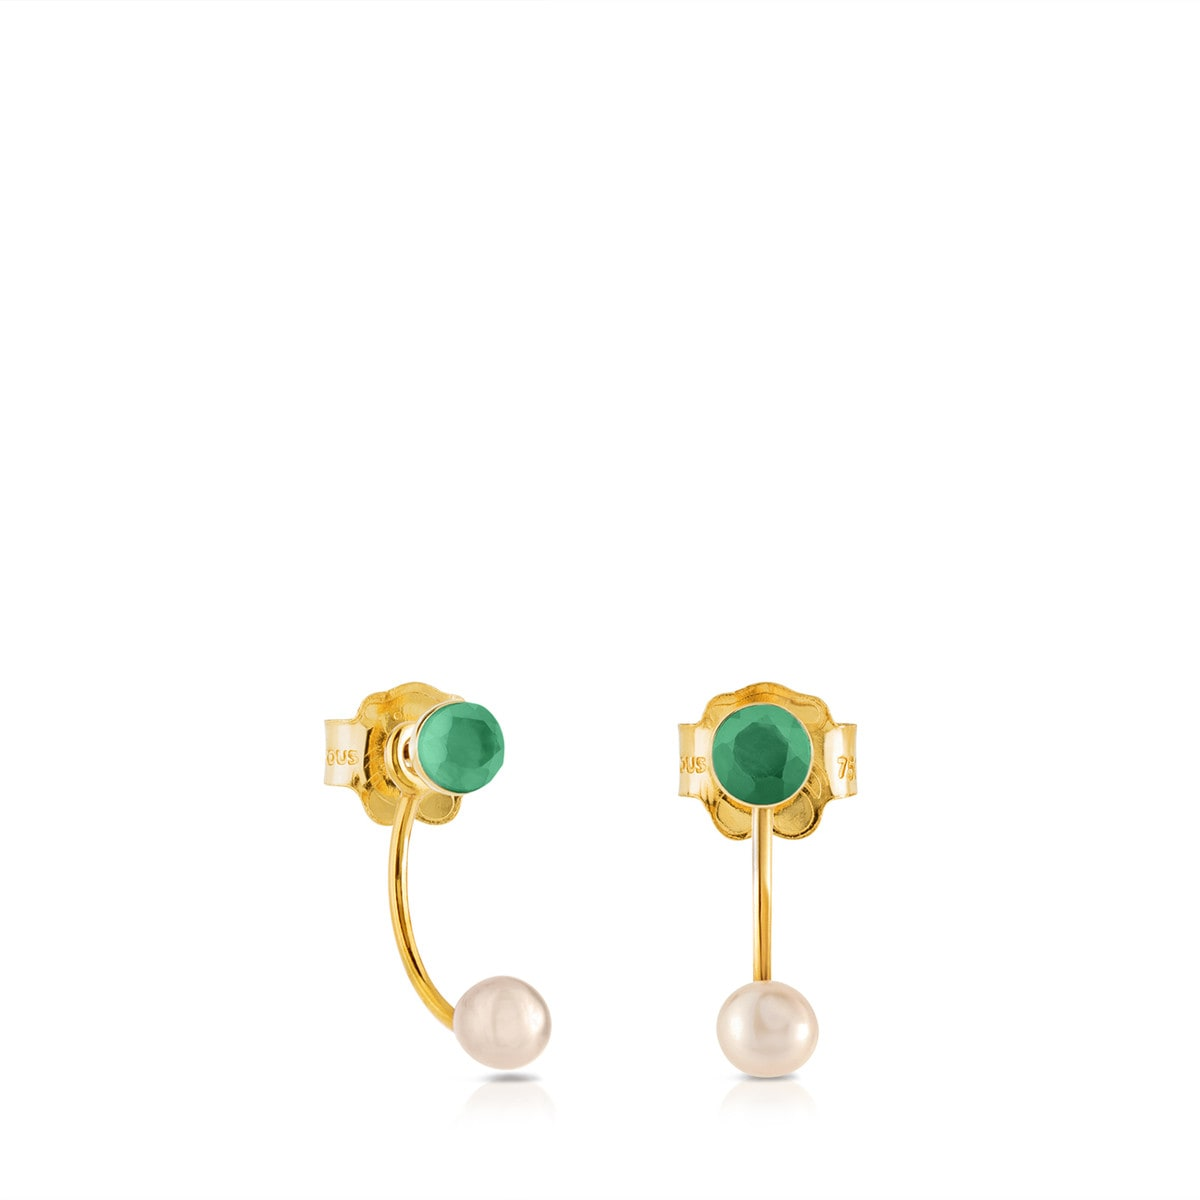 Pendientes Mini Bright de Oro